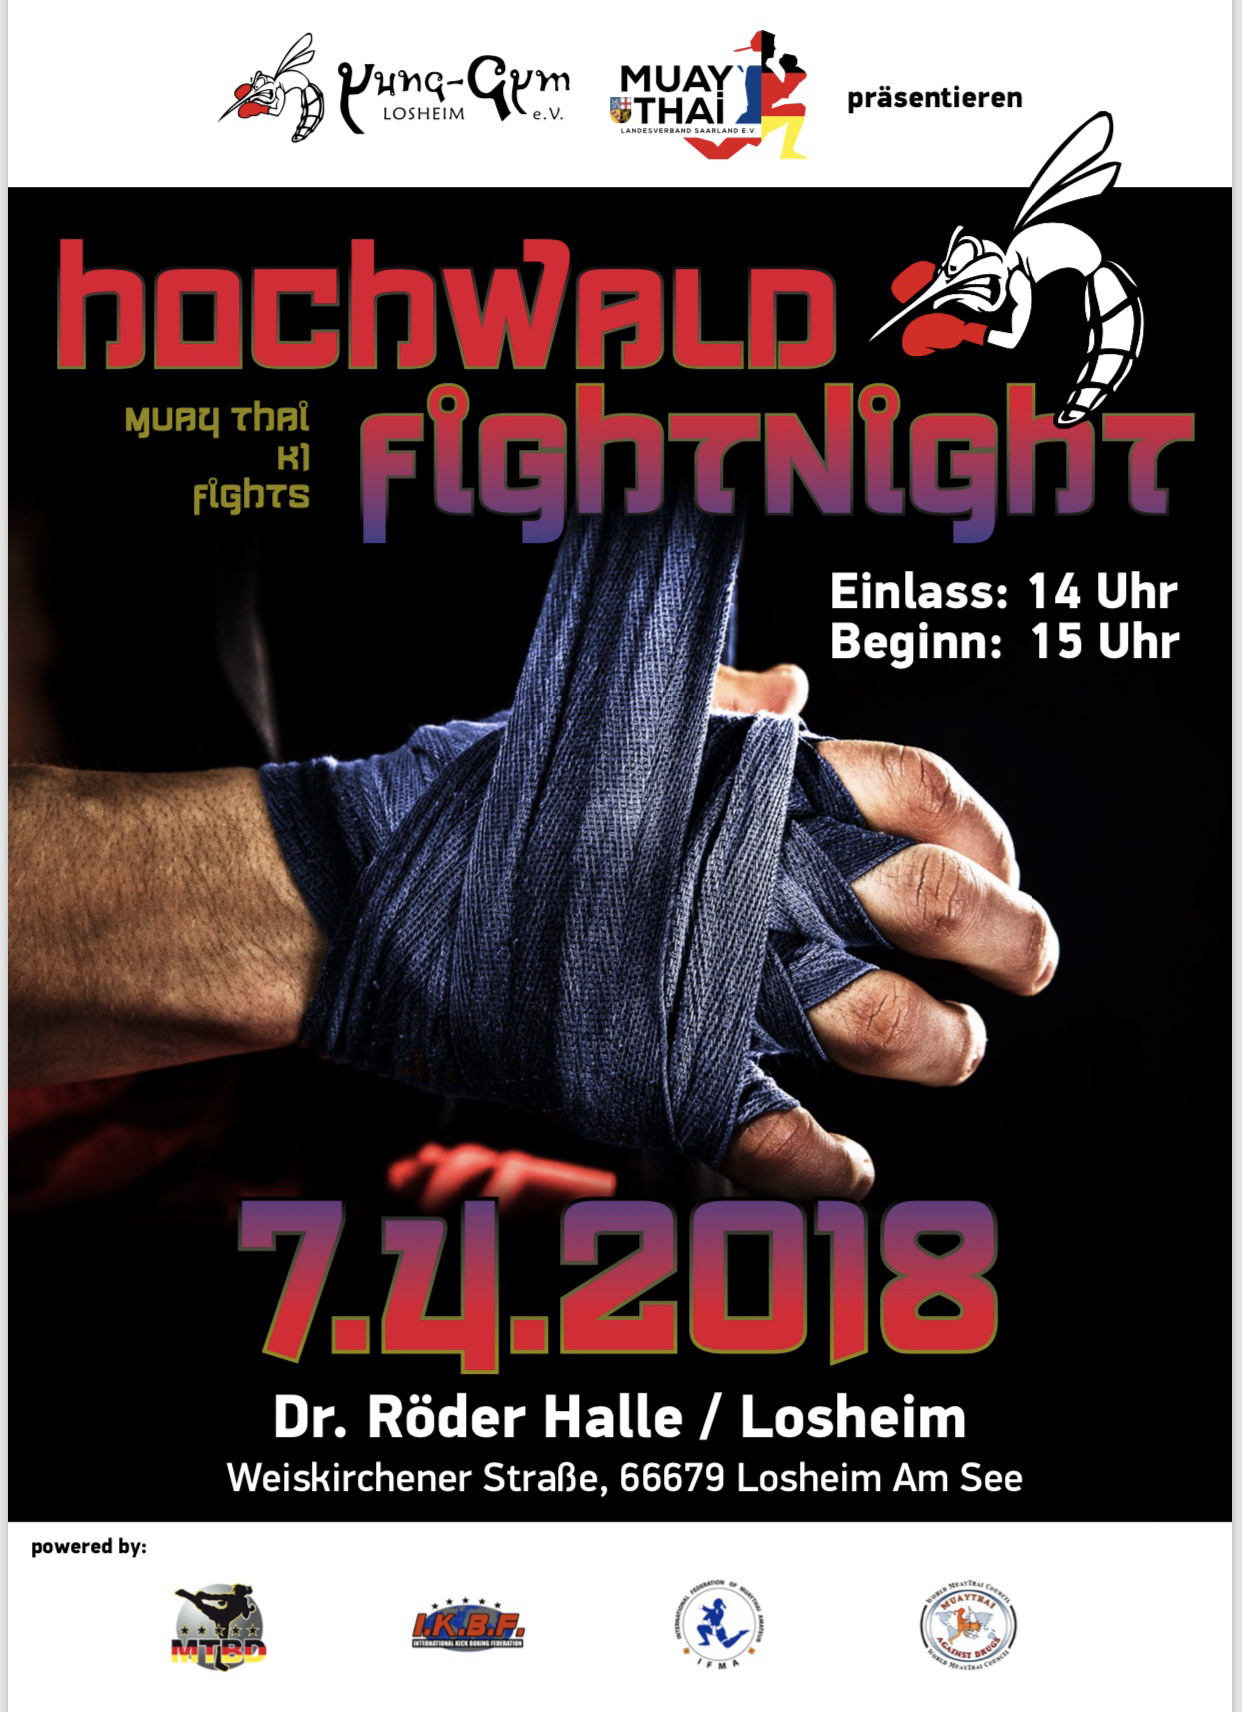 Hochwald Fightnight